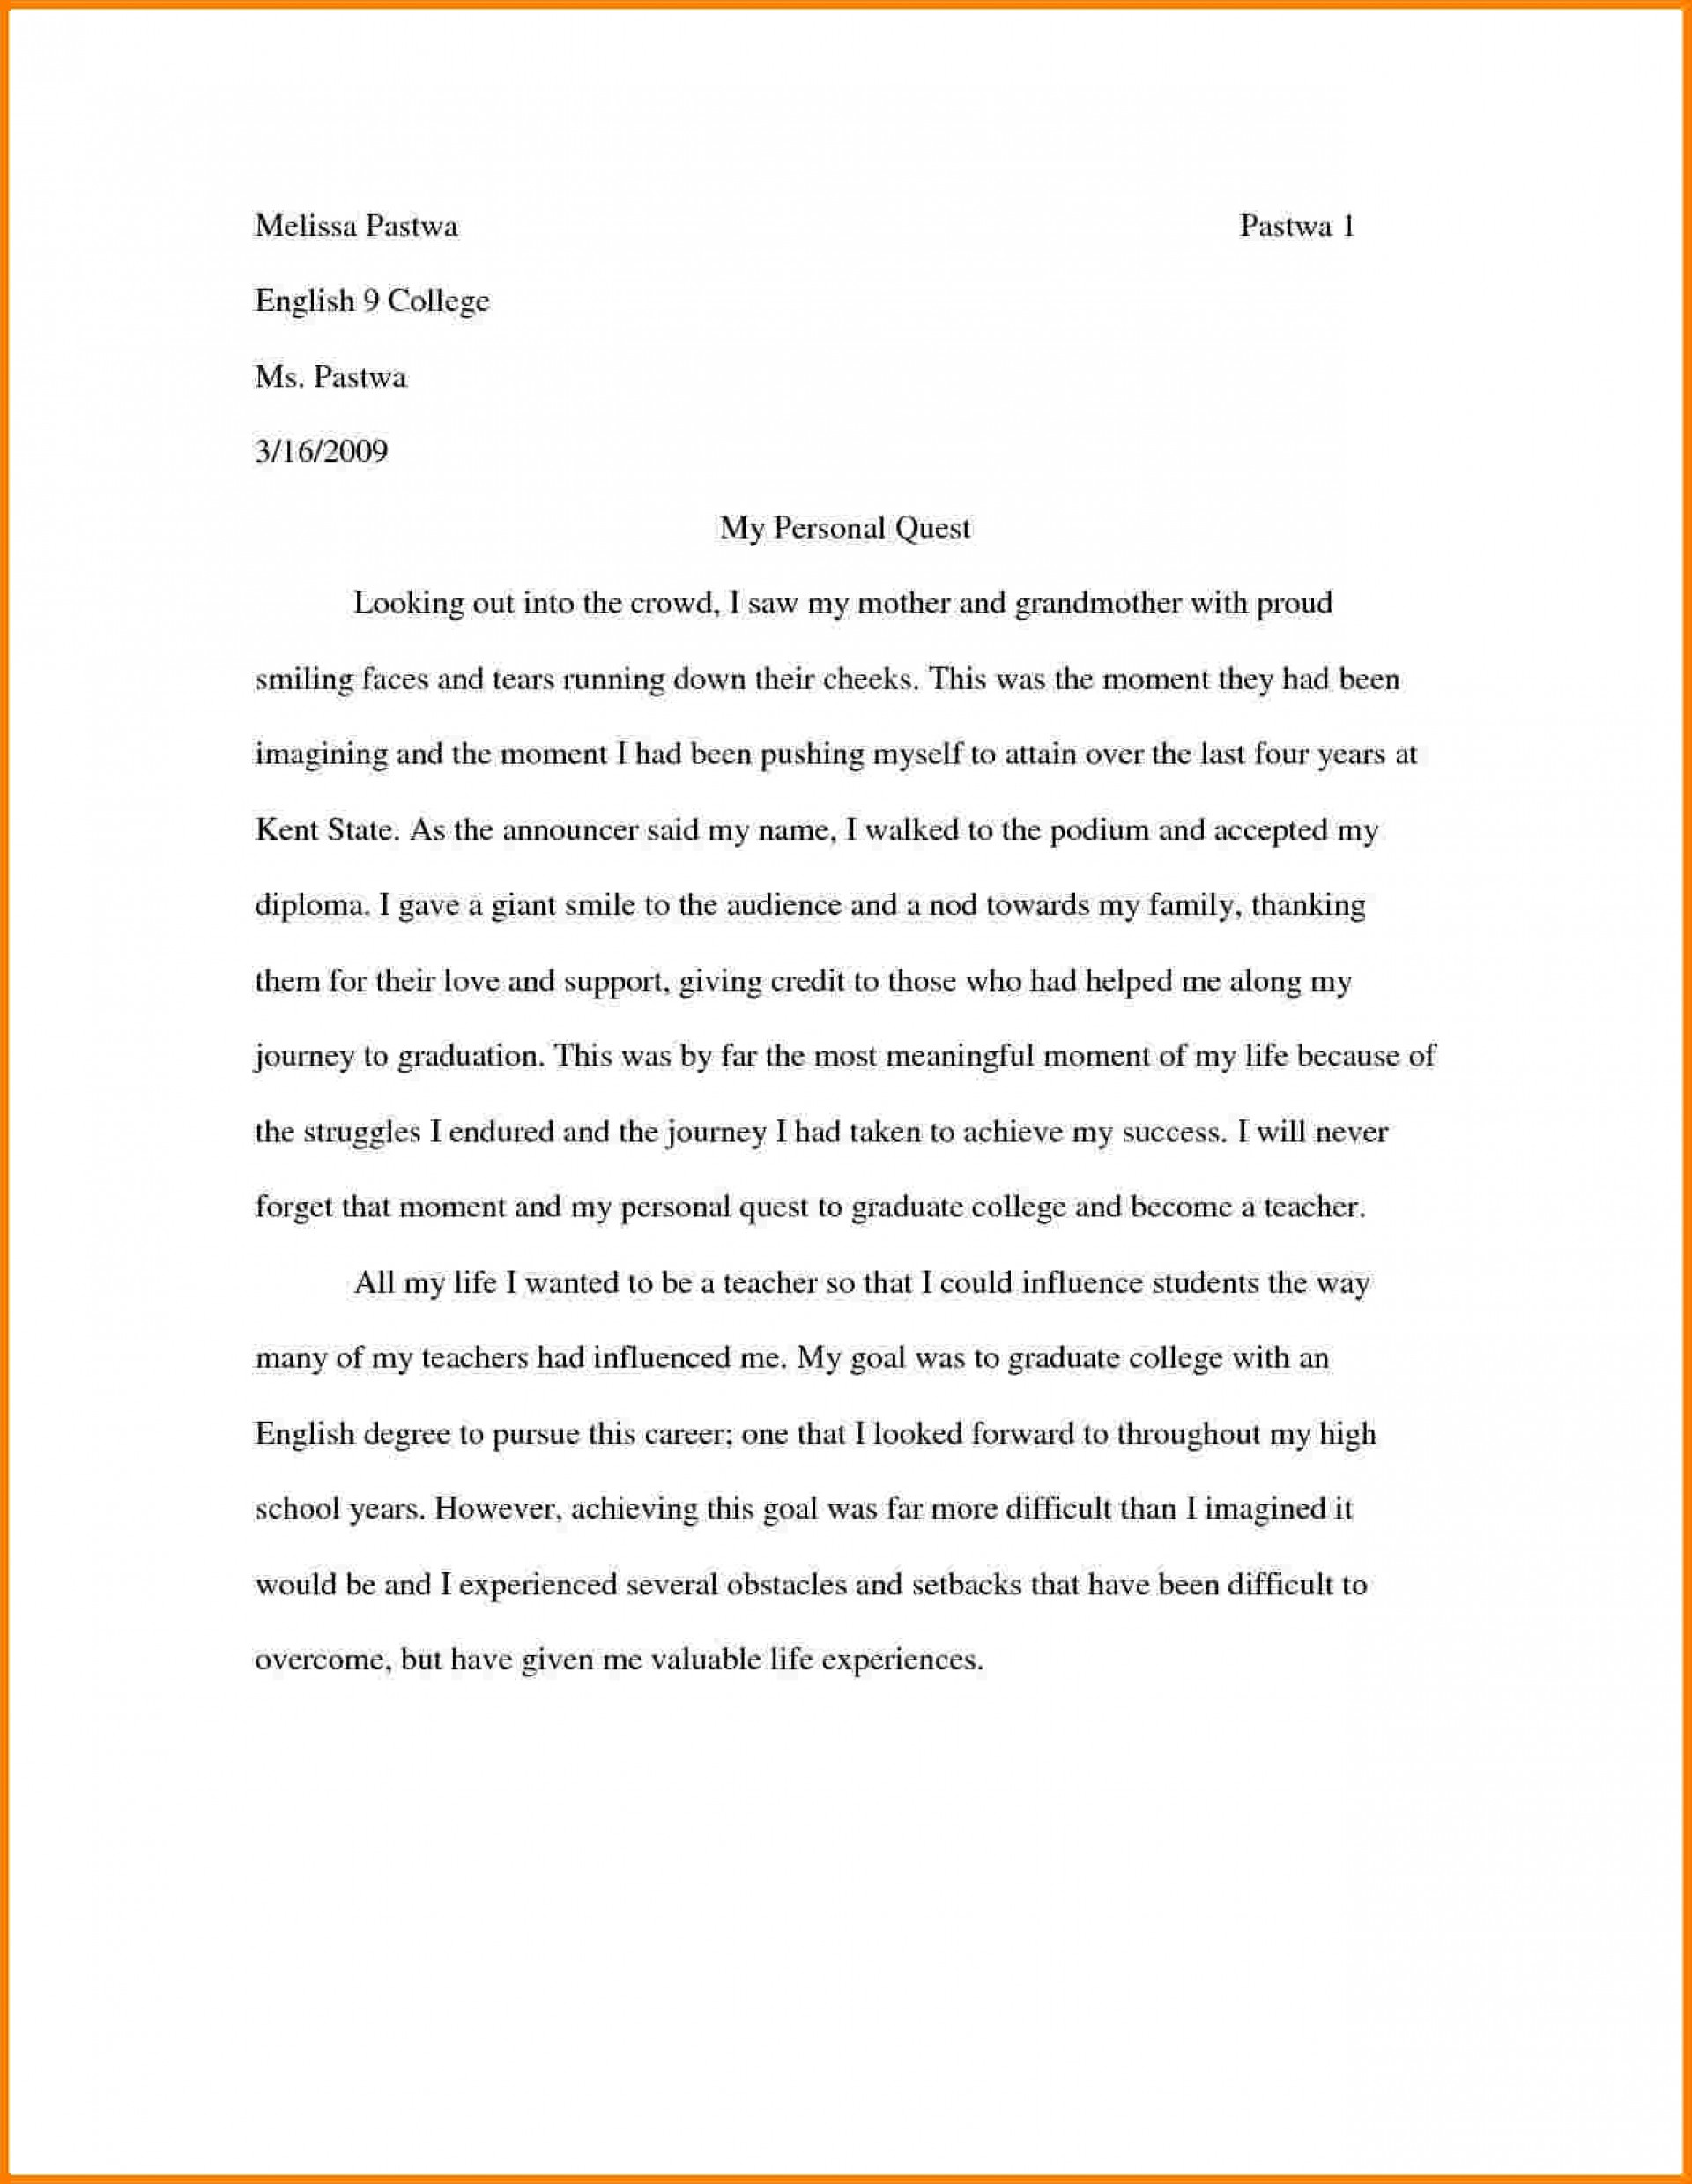 020 3341381556 How To Write Proposal20nt Essay Topics Buy Researchs Cheap Examples20 Good For Awesome Research Papers Interesting Paper History Topic College English High School Students In The Philippines 1920